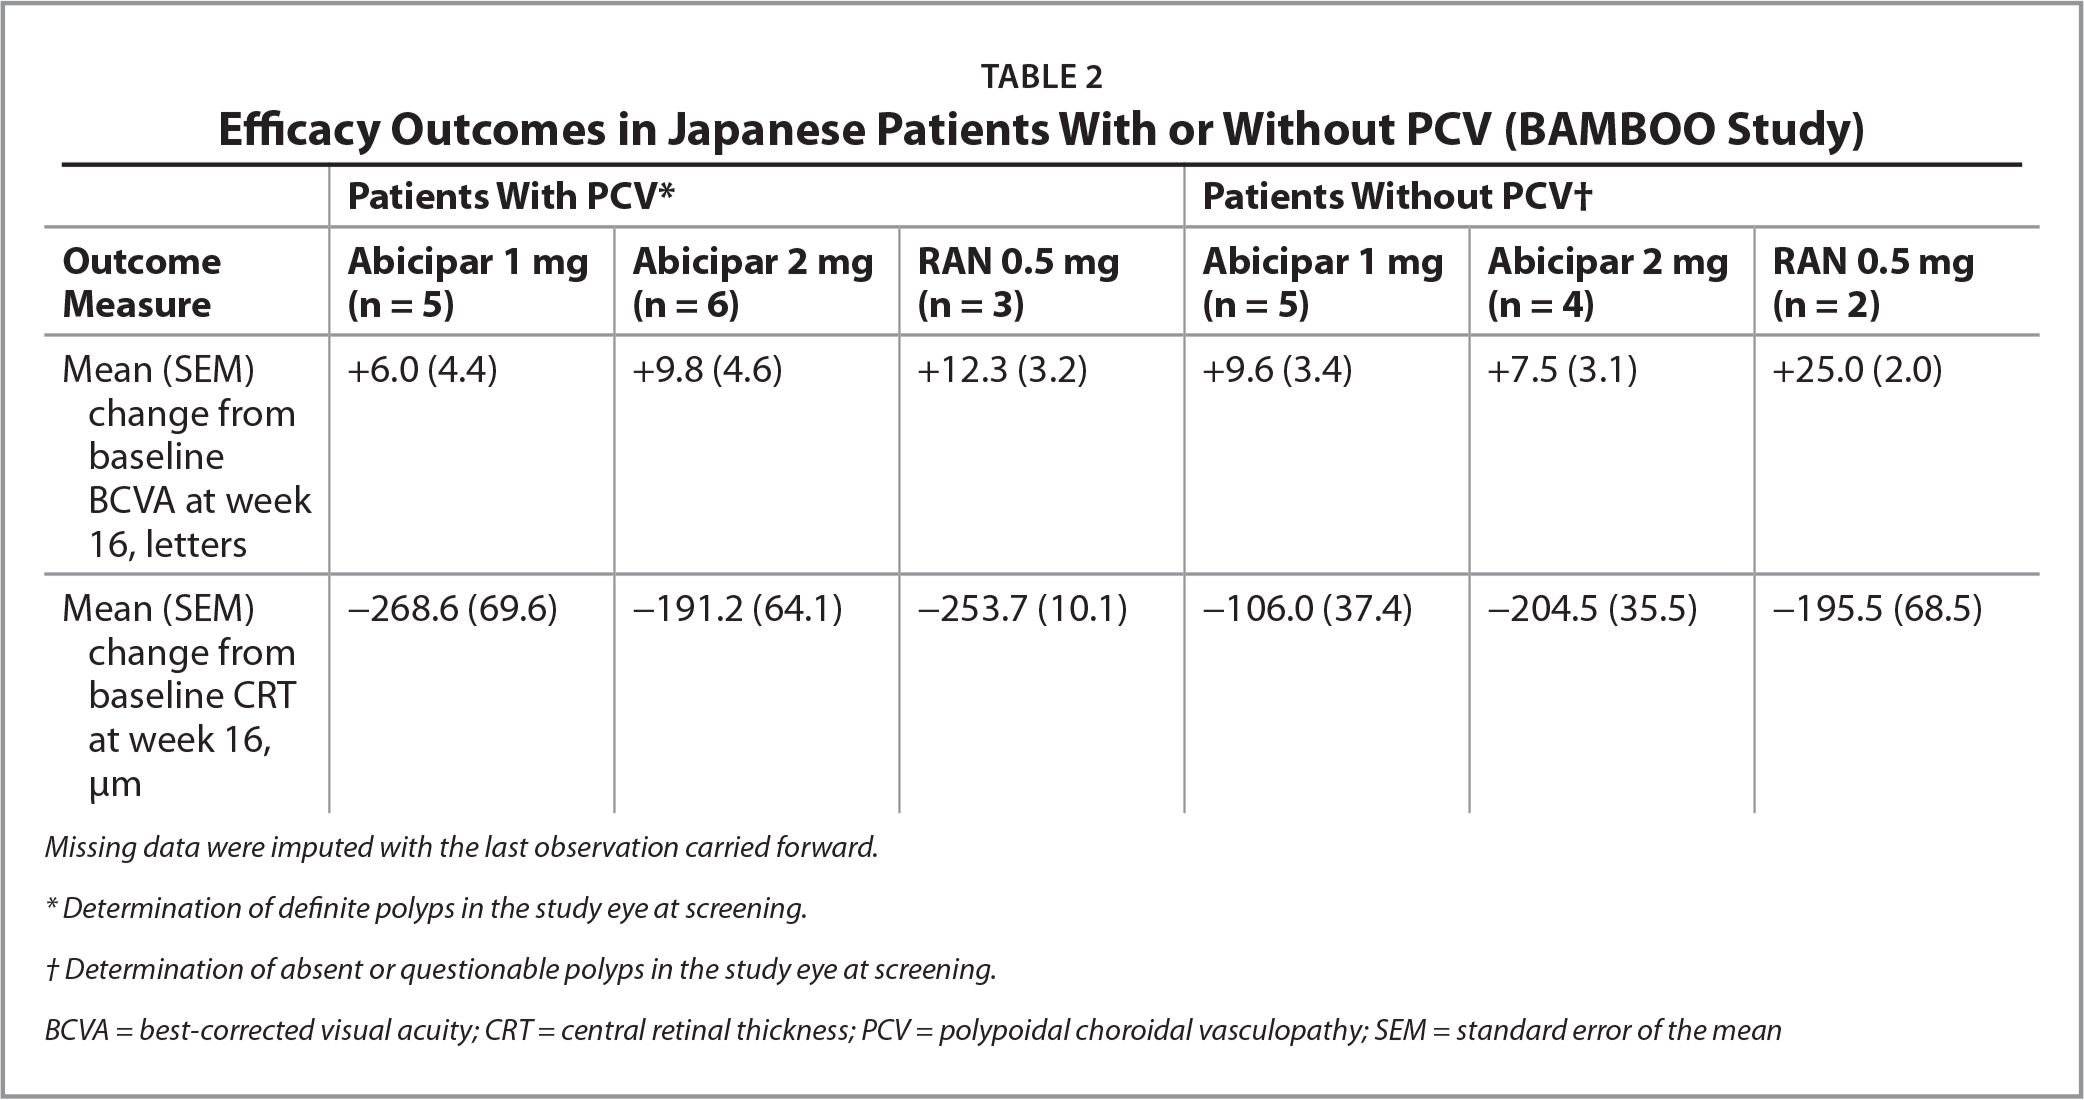 Efficacy Outcomes in Japanese Patients With or Without PCV (BAMBOO Study)